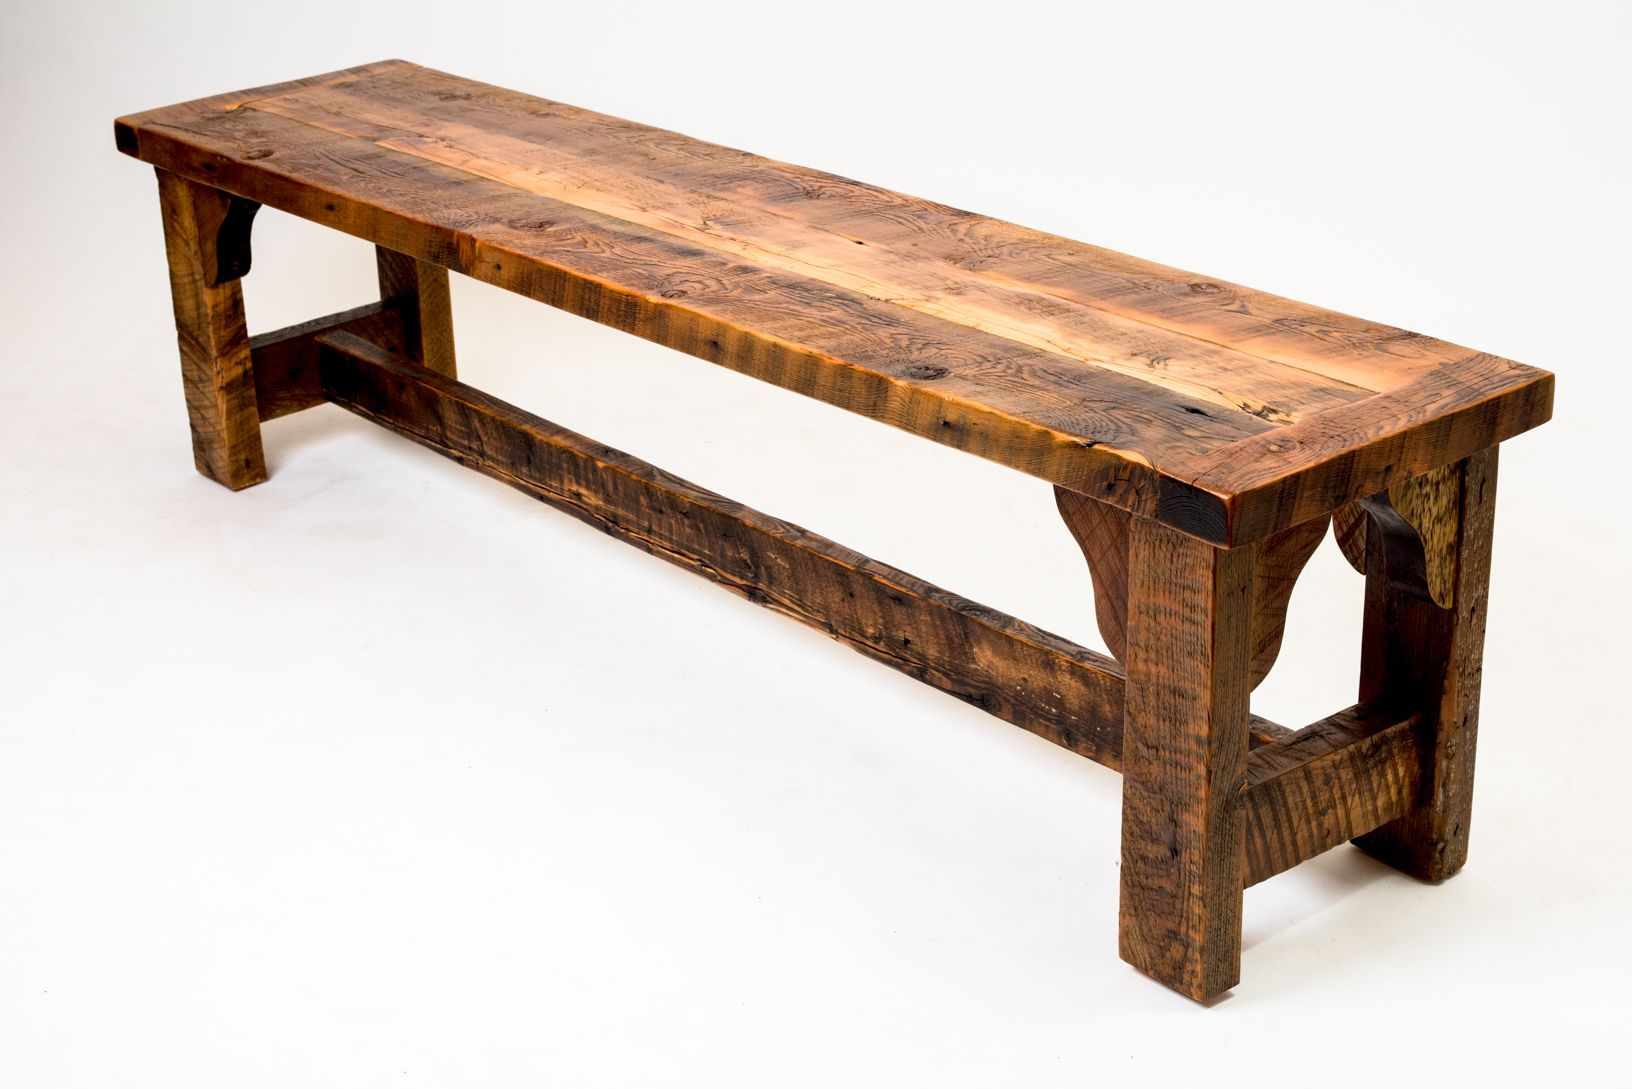 Fantastic Custom Rustic Victorian Bench By Rorys Rustic Furniture Machost Co Dining Chair Design Ideas Machostcouk